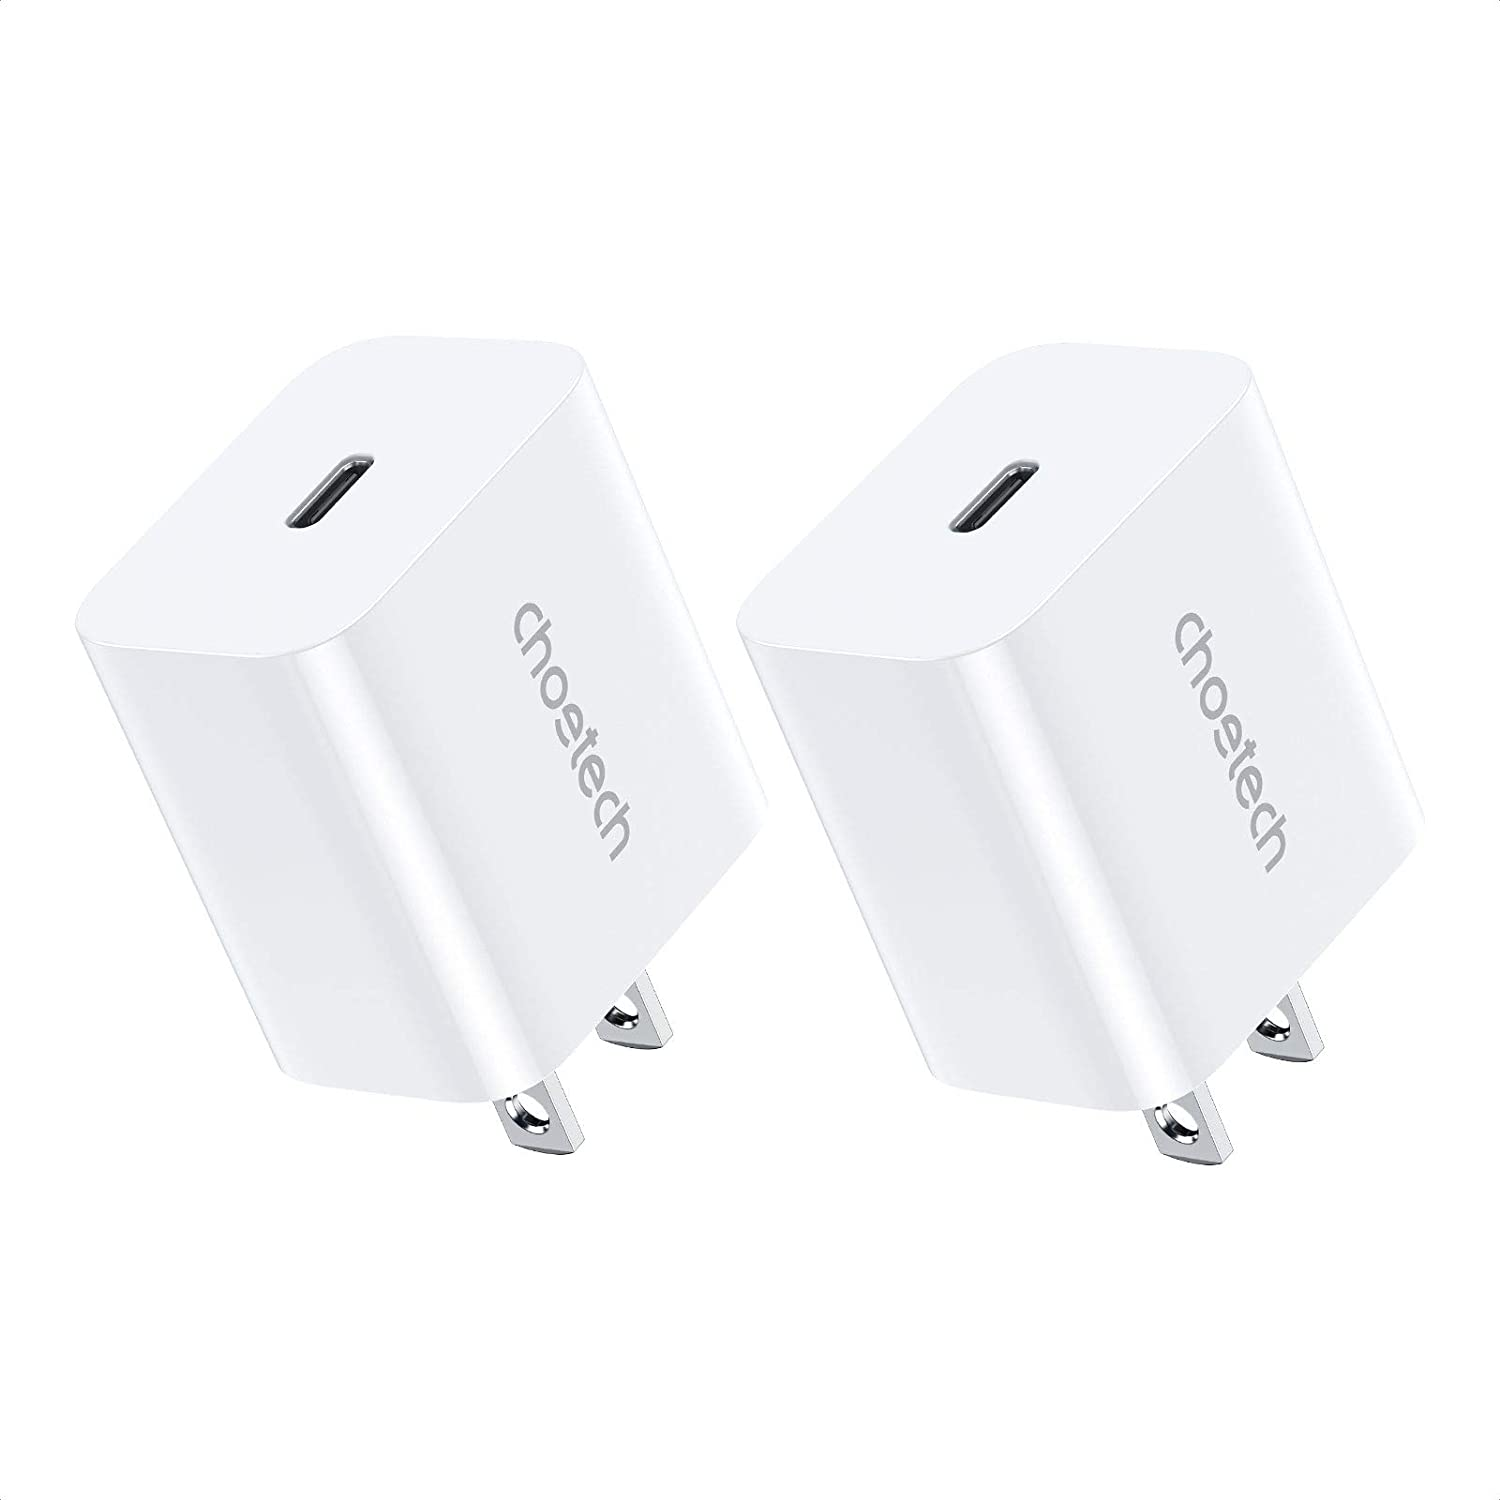 USB C Charger, CHOETECH 2-Pack PD Fast Charger 20W Type C Power Delivery 3.0 Wall Charger Compatible for iPhone 12/12 Pro Max/12 Pro/12 Mini/11 Pro Max/SE/XS/XR/8, iPad Pro, Galaxy S20/S10, Pixel 5/4